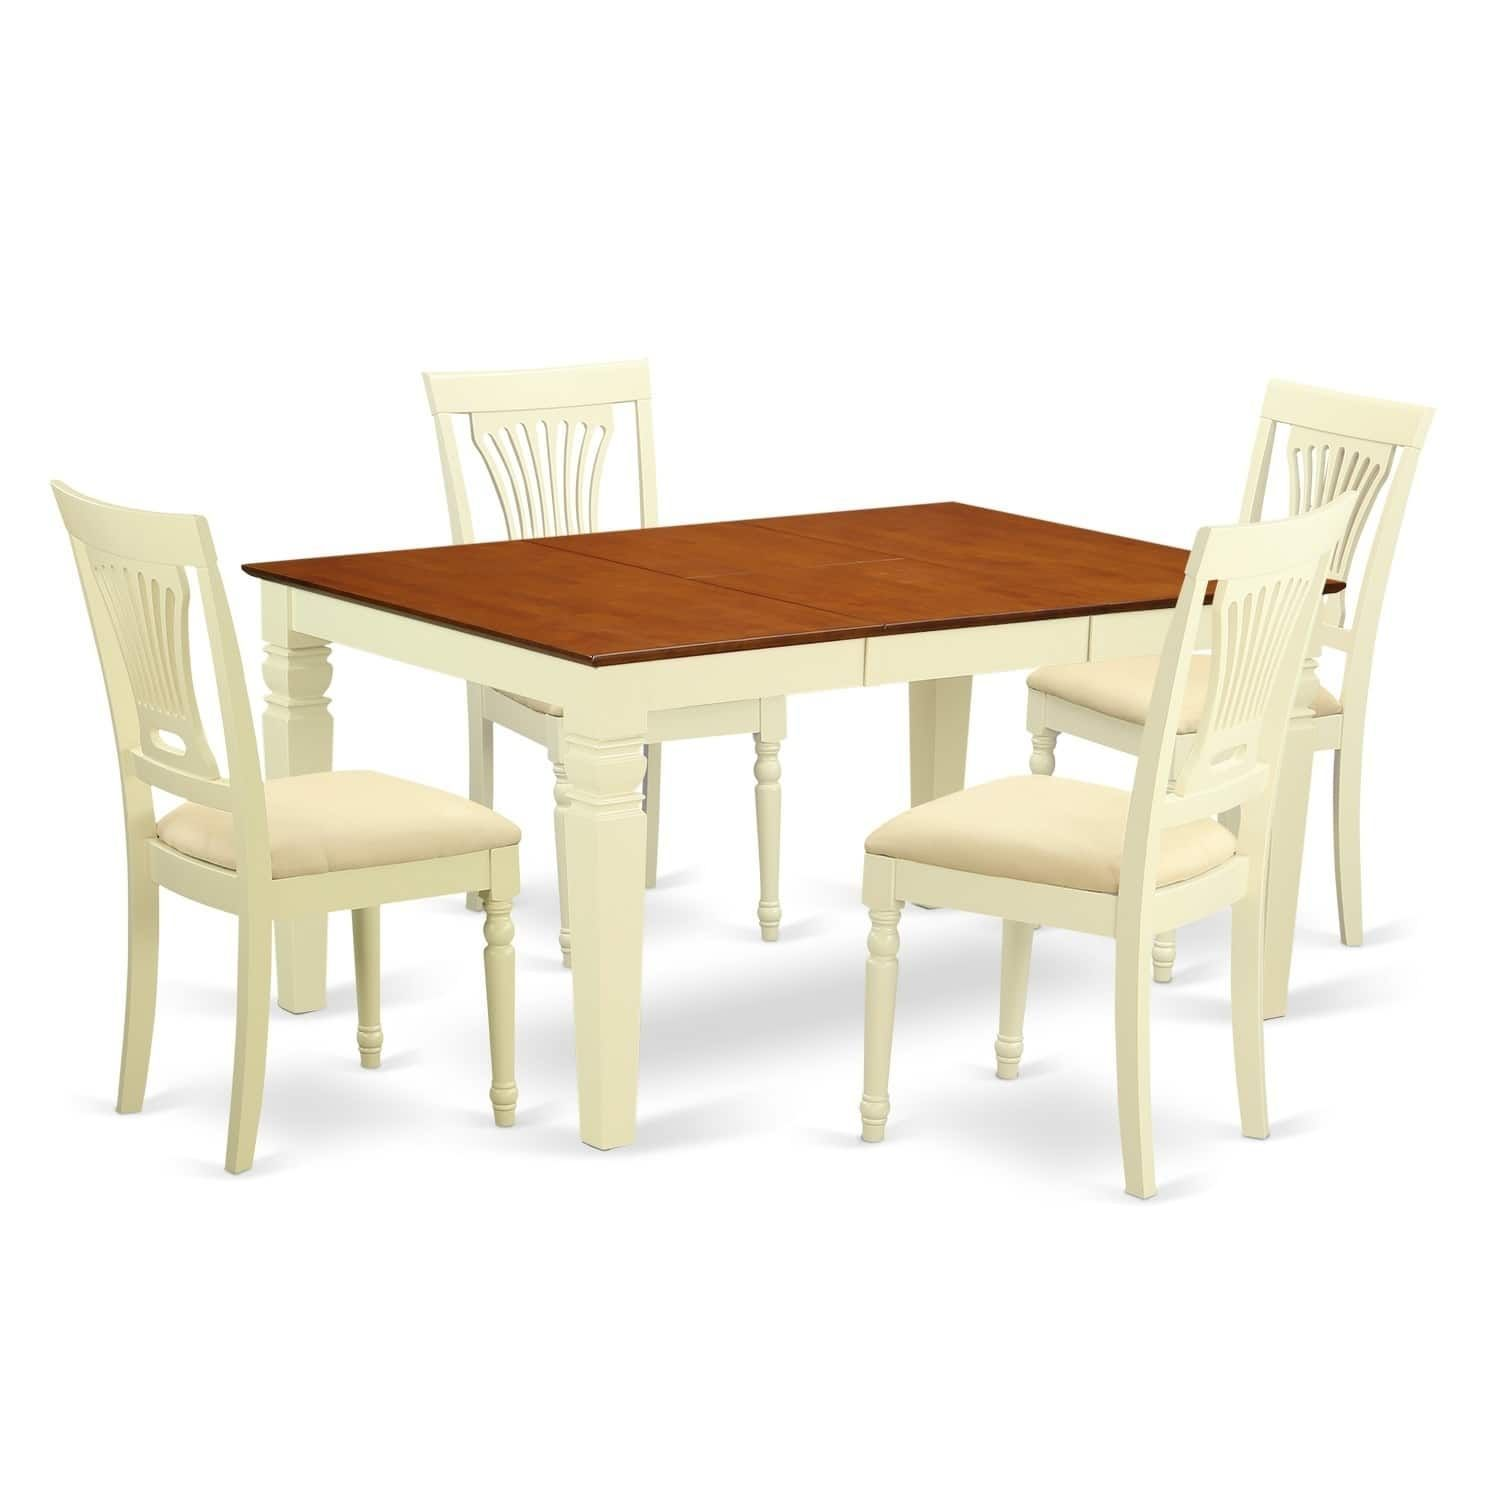 wepl7 bmk 5 pc kitchen table set with a table and 4 chairs 5 piece rh uk pinterest com